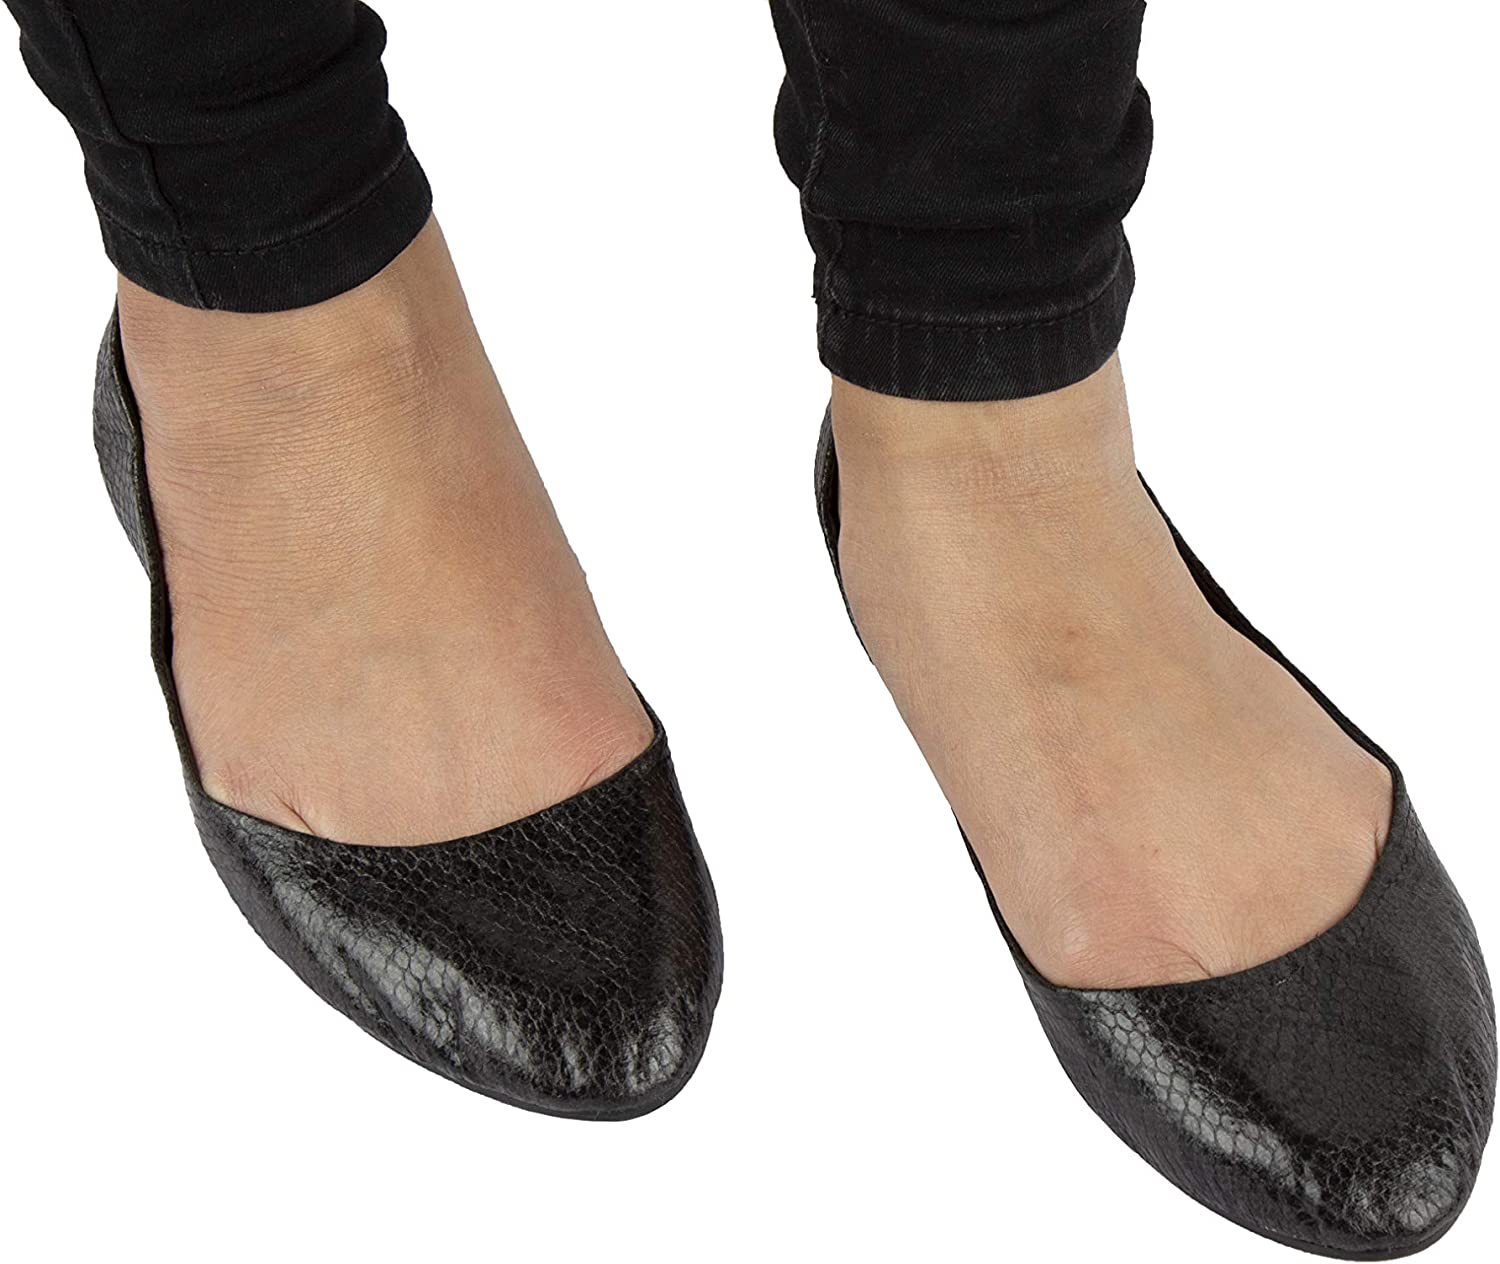 Wedding Mates roll up After Party Shoes Snake Skin Effect Black